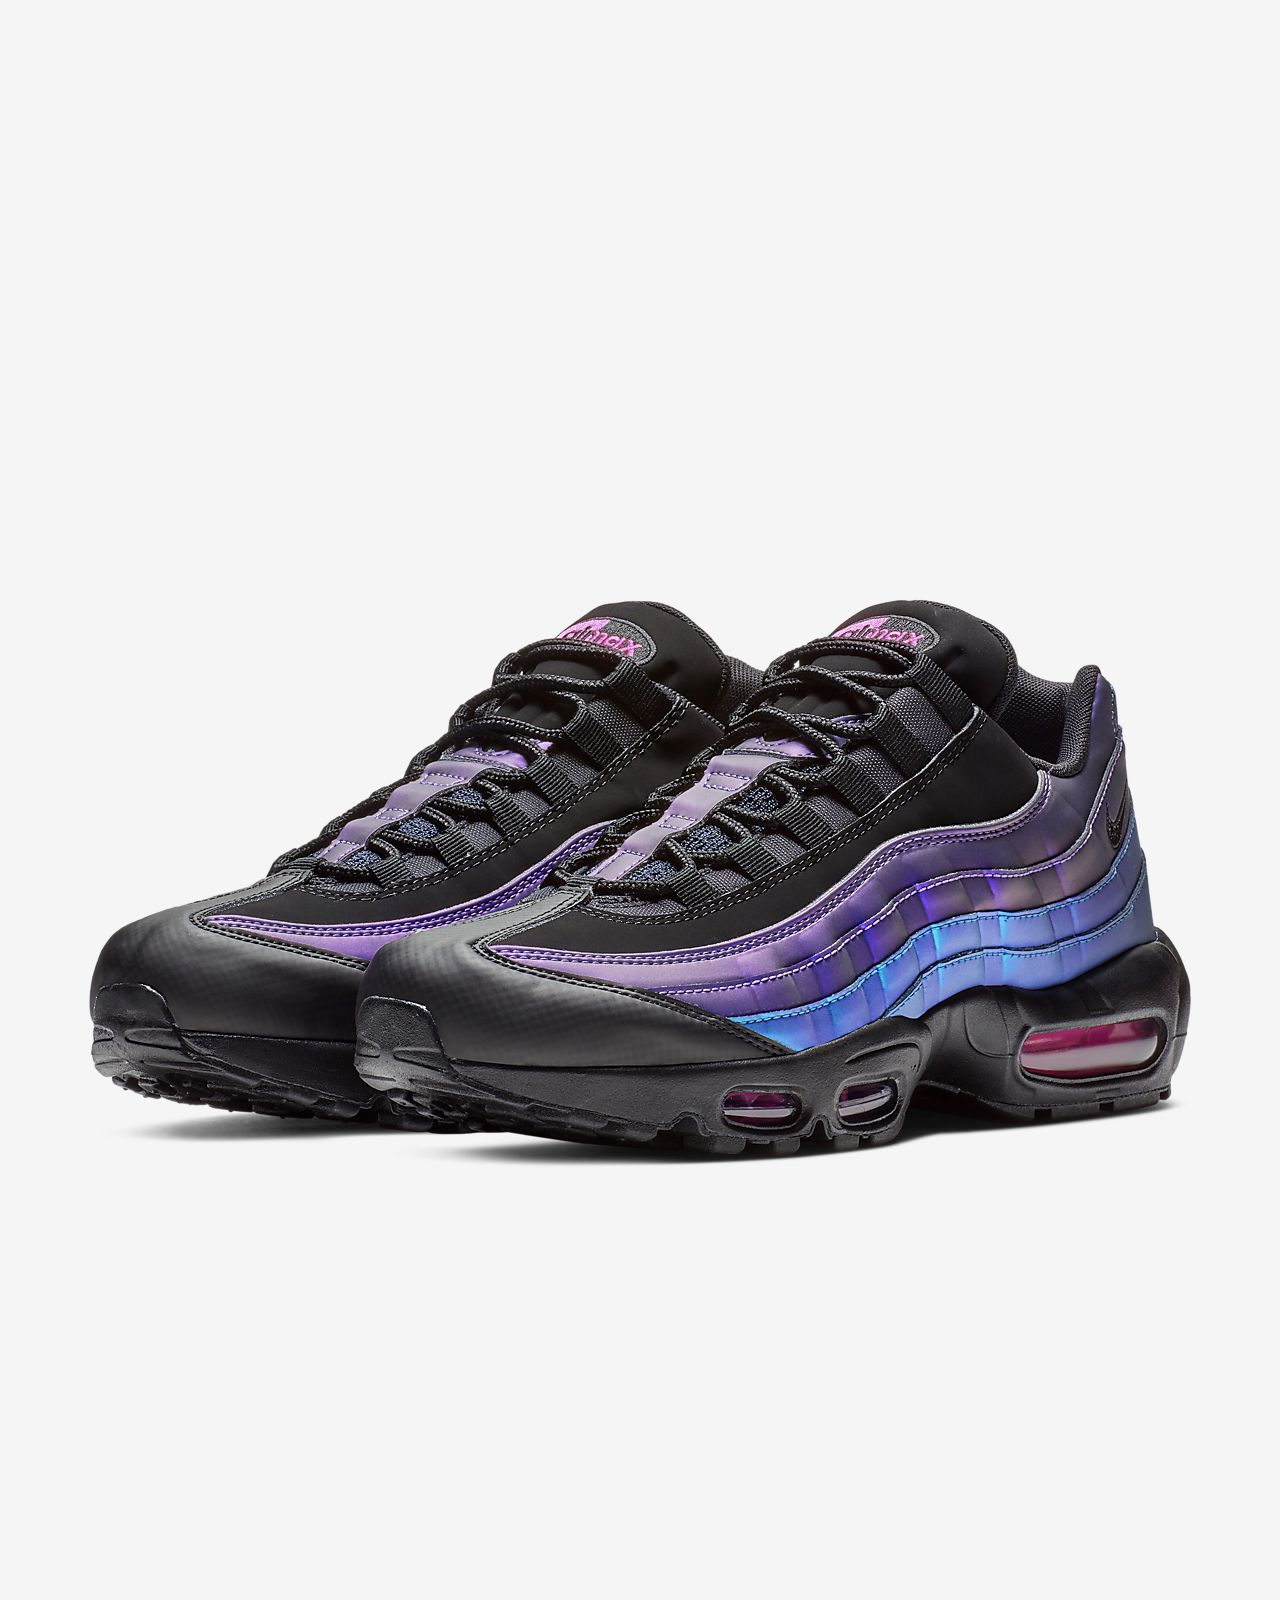 7325eccbbdc Nike Air Max 95 Premium Men s Shoe. Nike.com IE